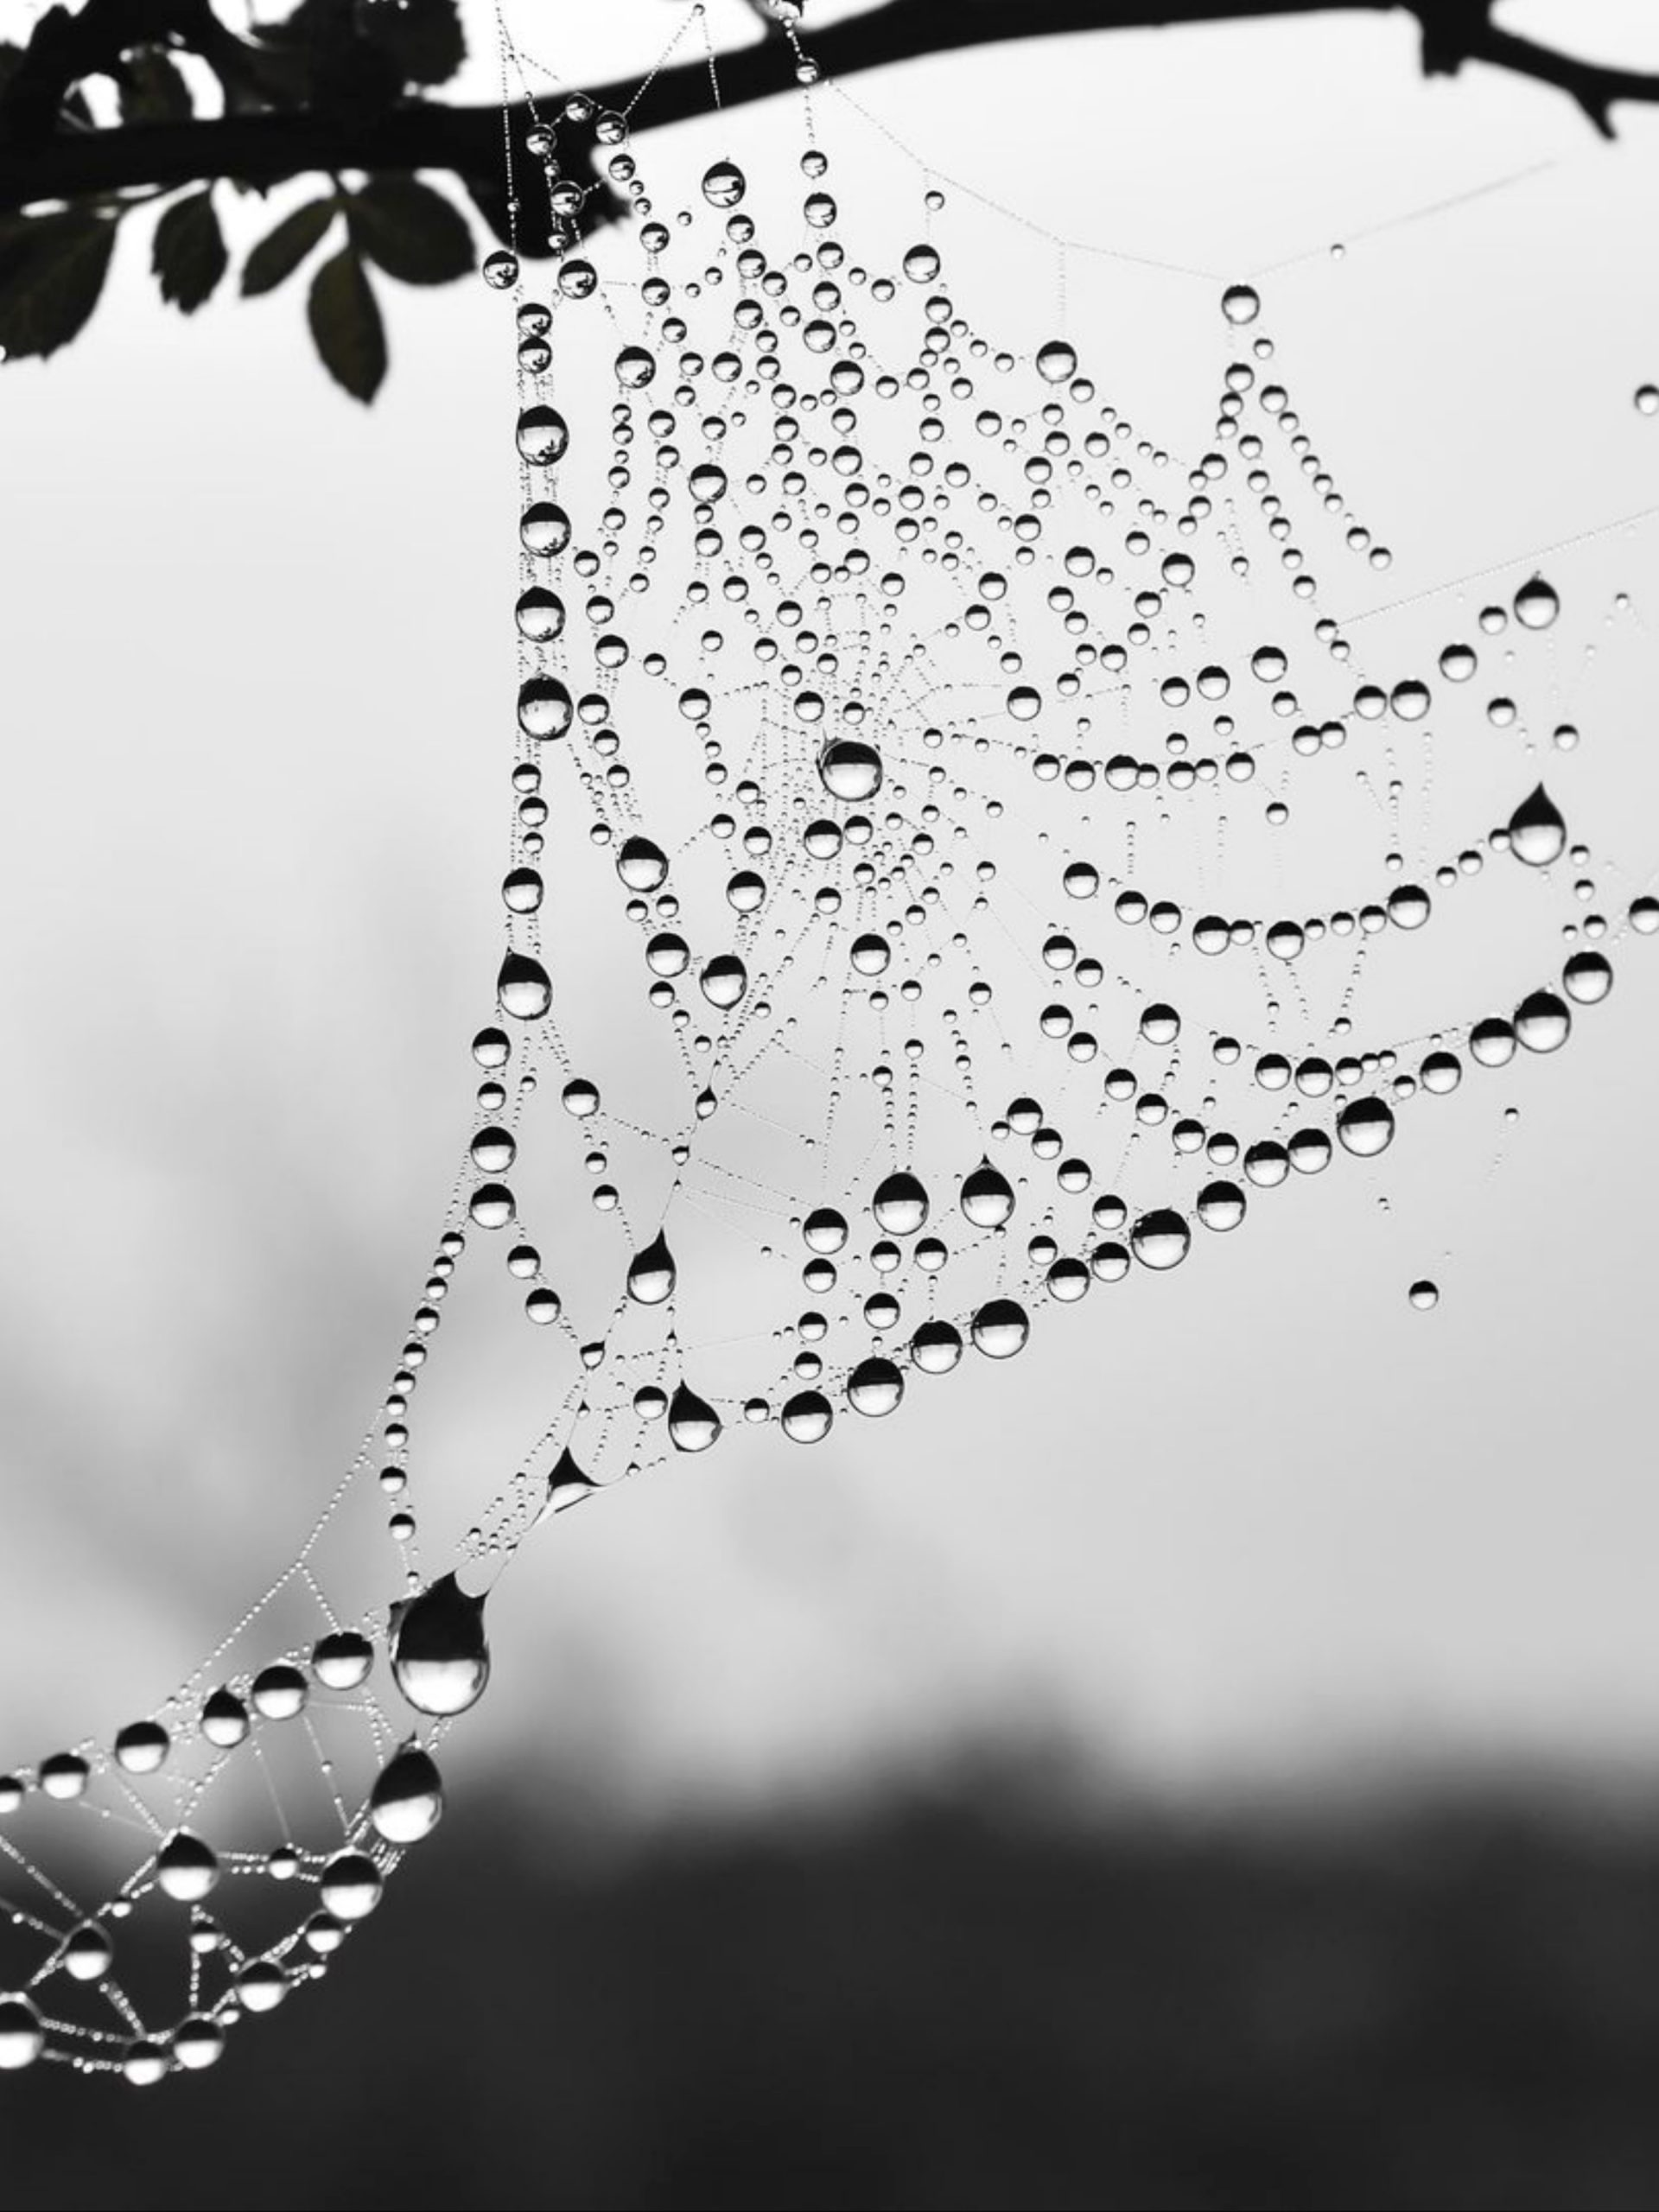 Drops on spider web